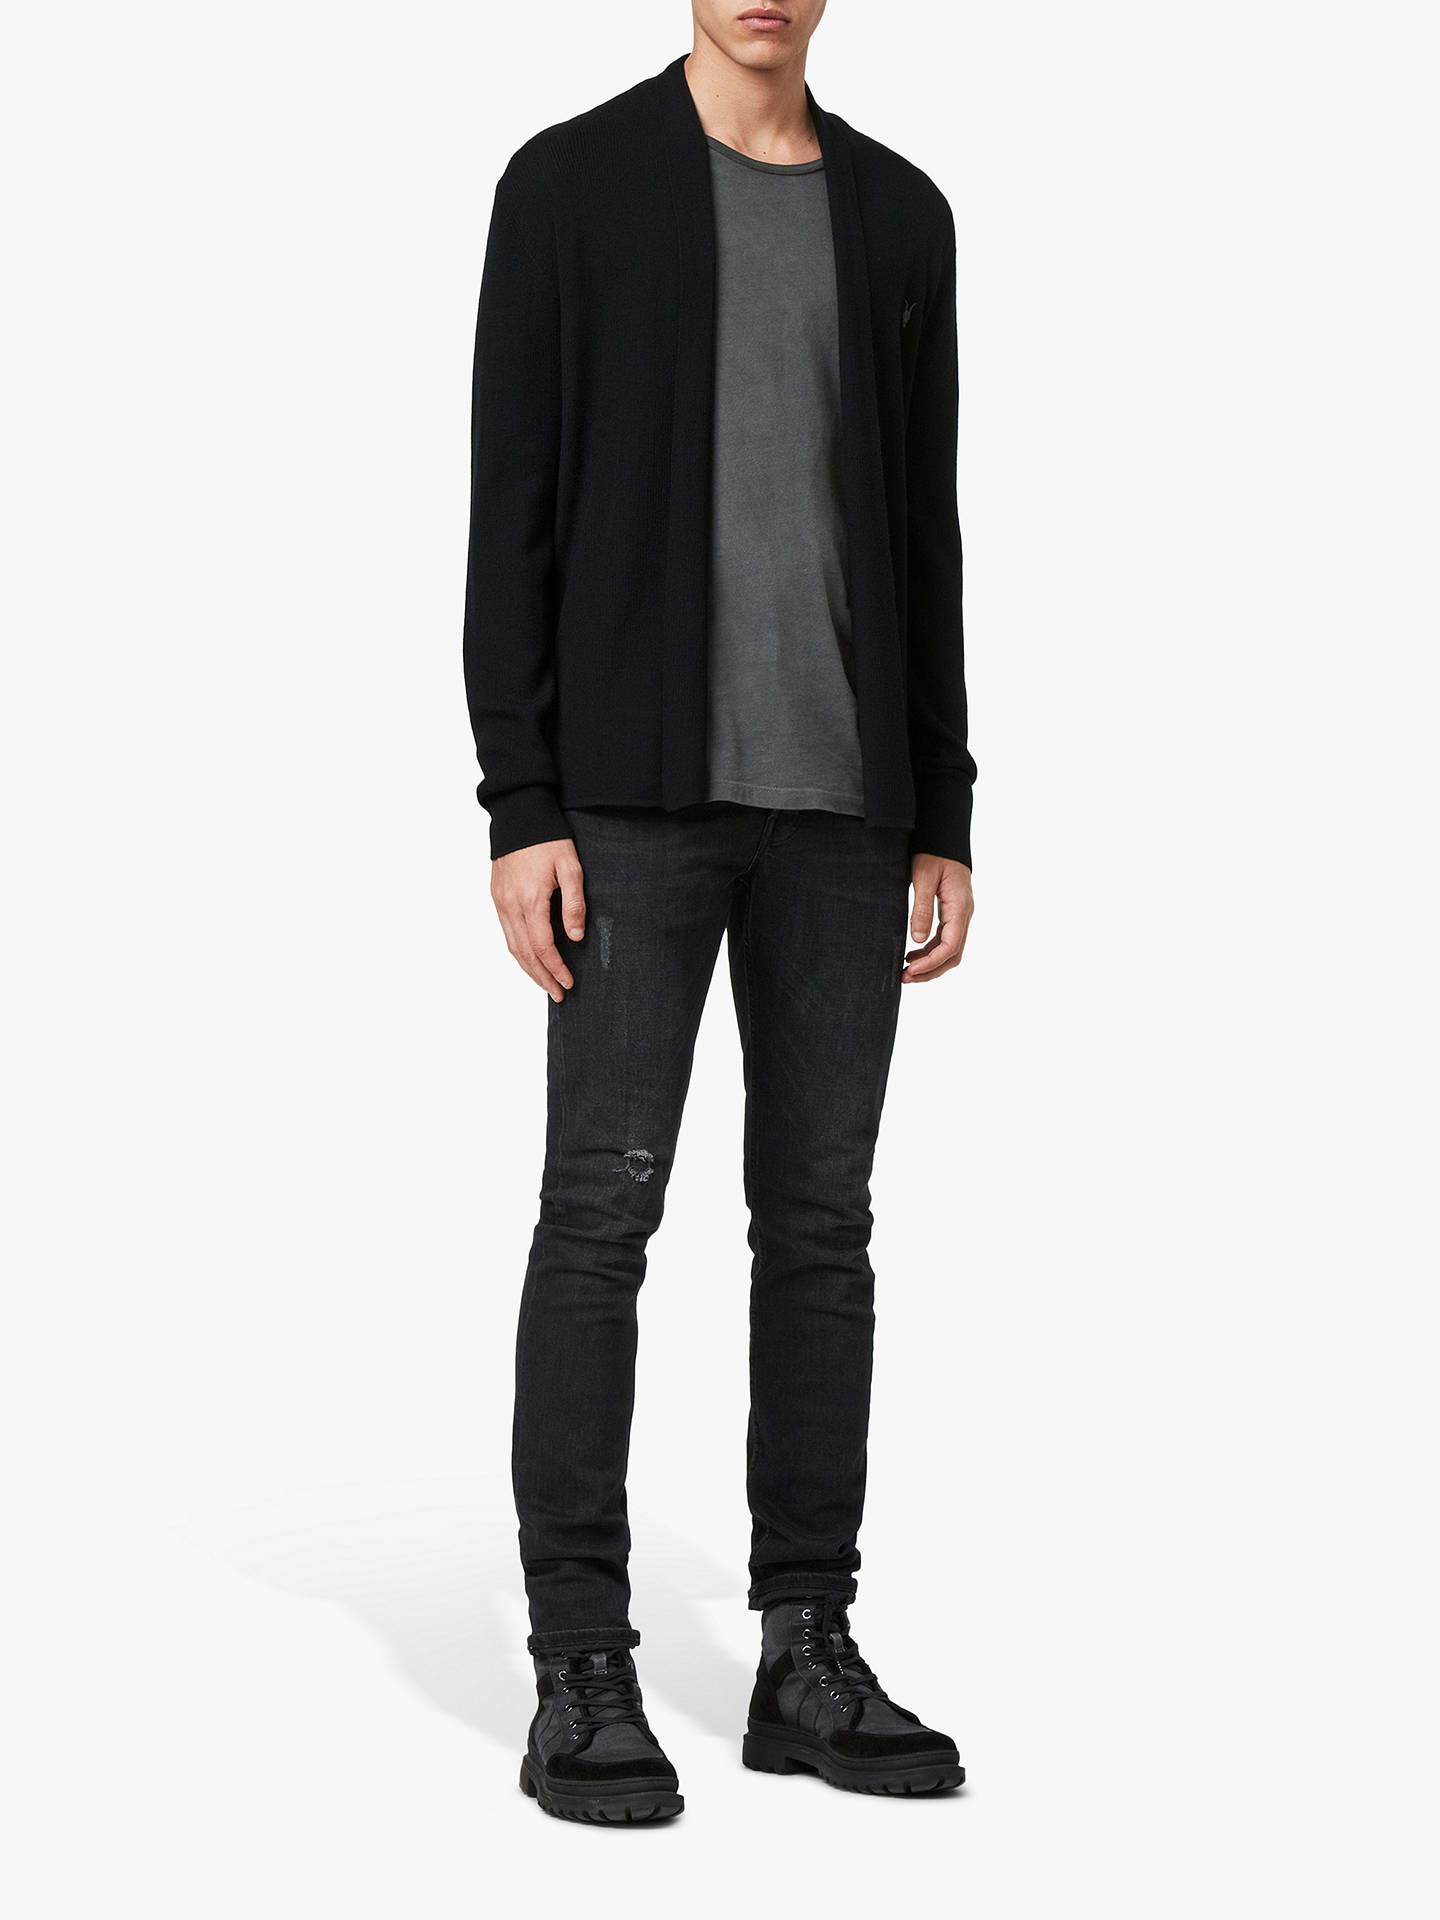 BuyAllSaints Mode Merino Cardigan, Black, XS Online at johnlewis.com